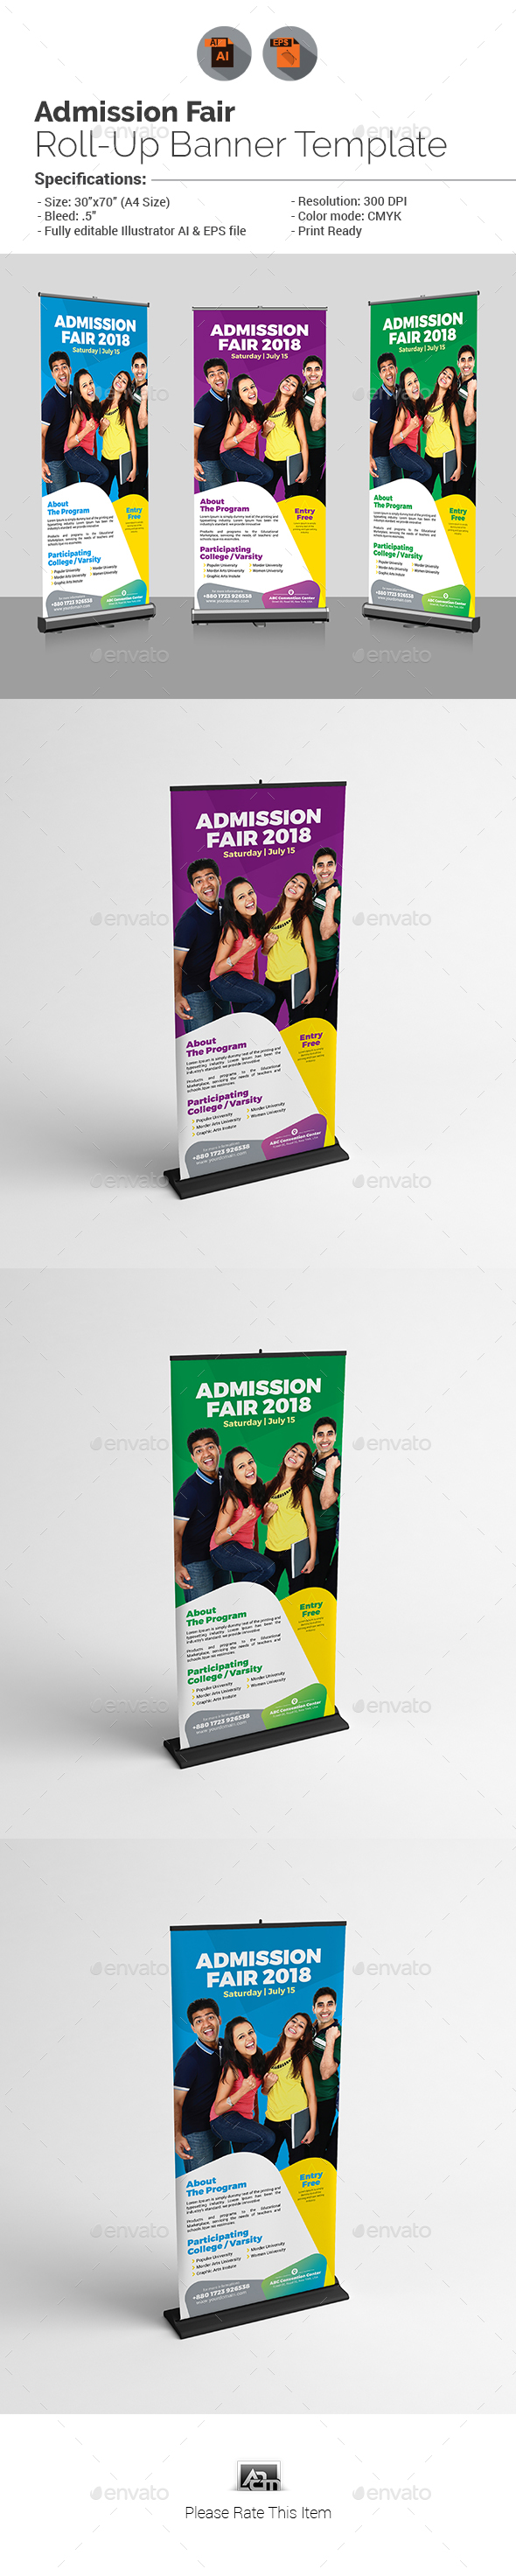 Admission Fair Roll-Up Banner - Signage Print Templates